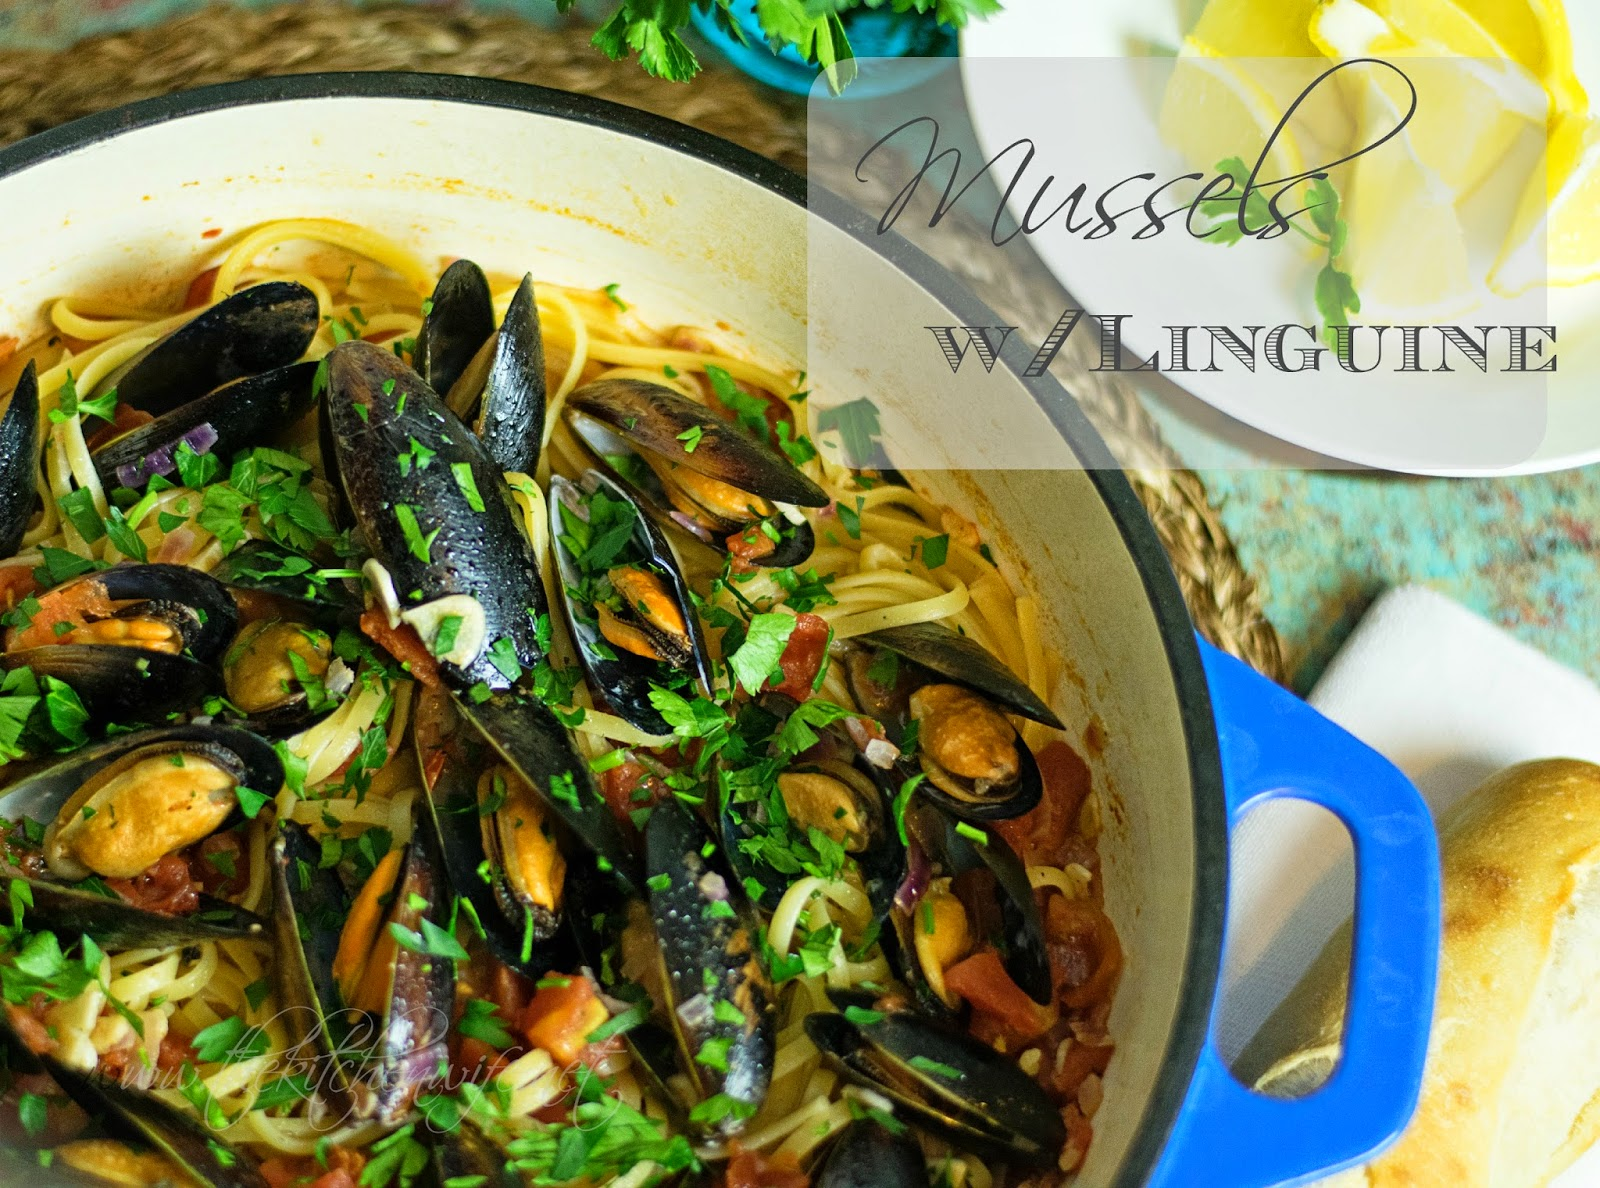 Mussels w/ Linguine